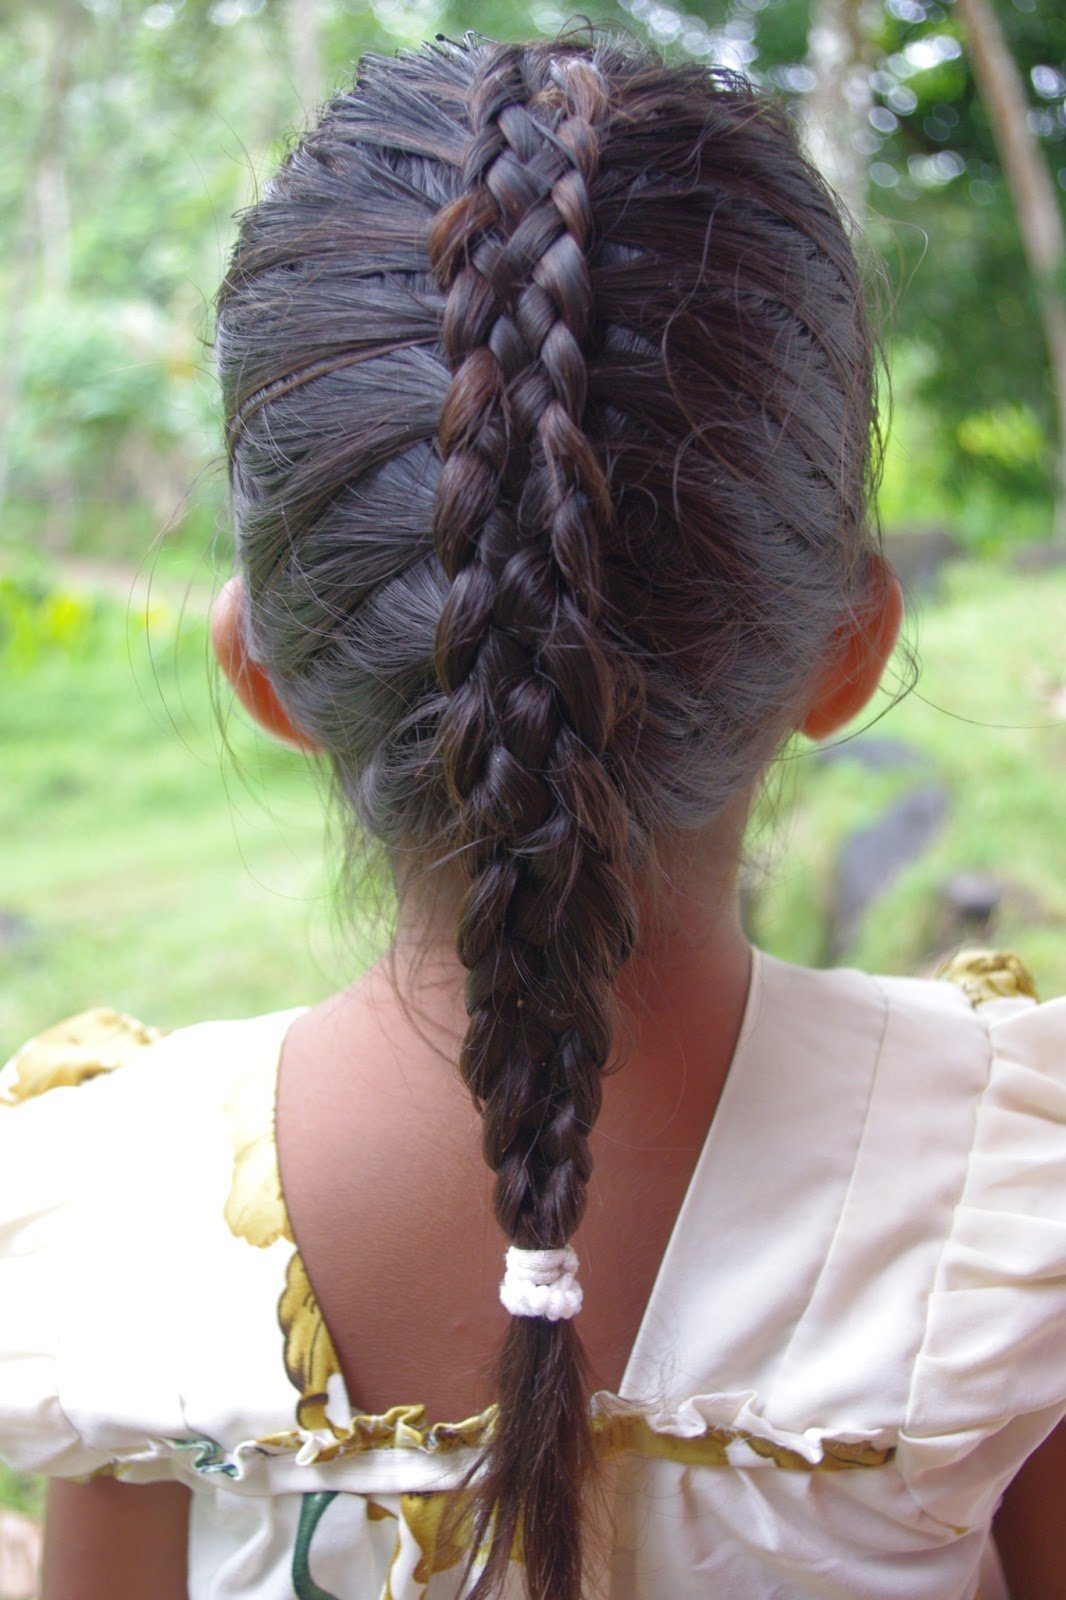 The Best Braids Hairstyles For Super Long Hair Micronesian Girl Two Cute Braided Hairstyles For Big Pictures Original 1024 x 768